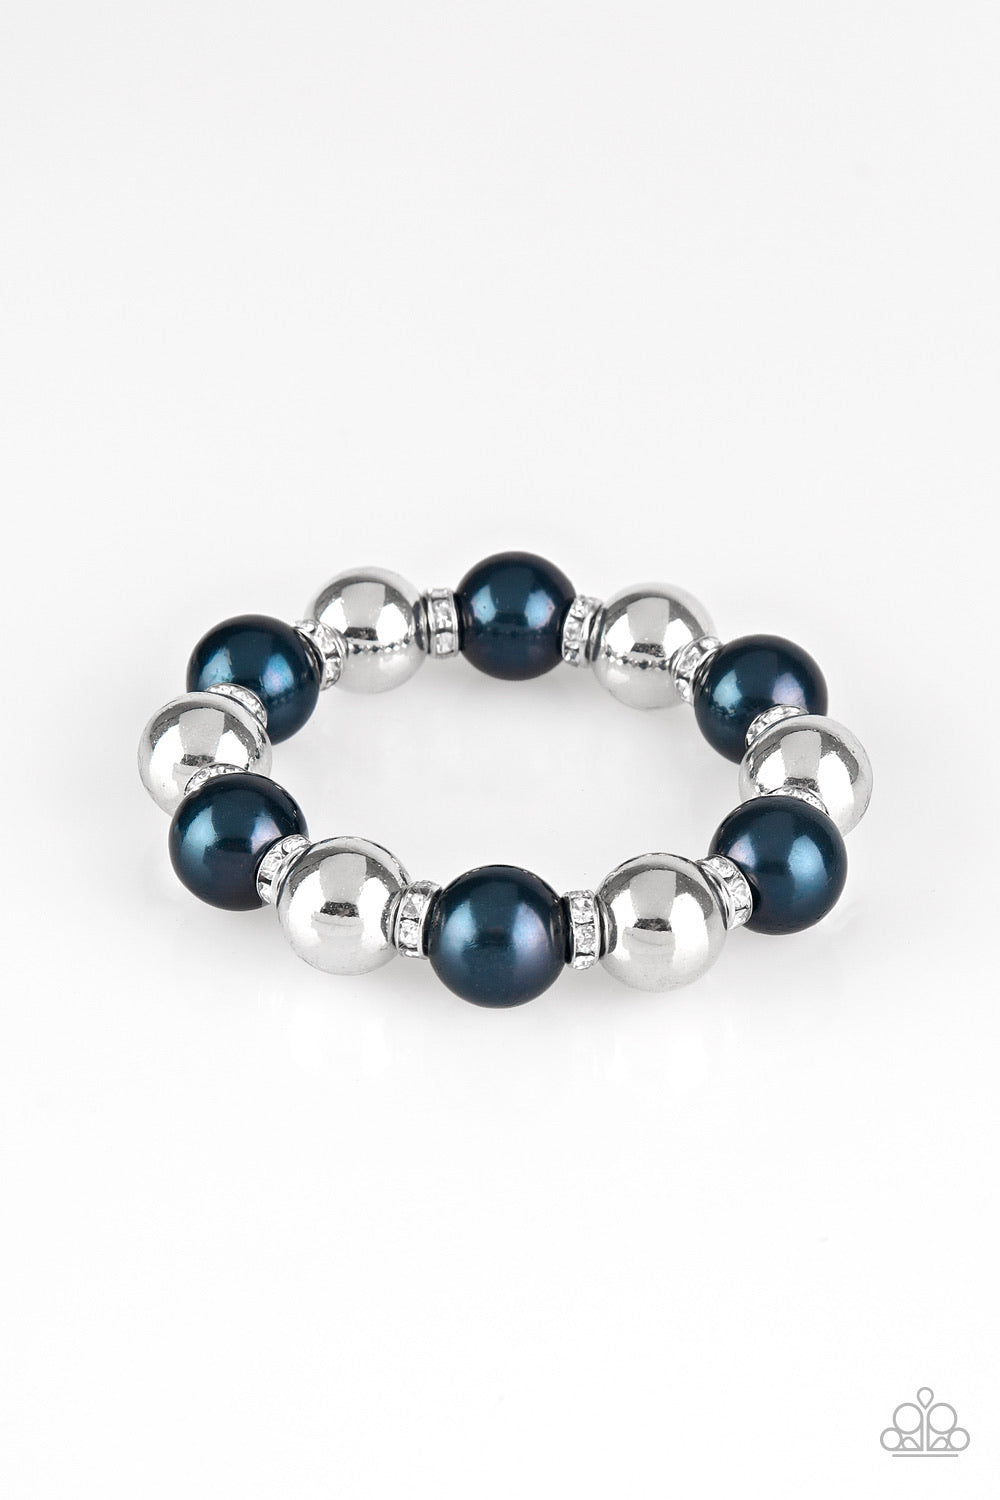 So Not Sorry - Blue Pearl Bead Bracelet - Paparazzi Accessories